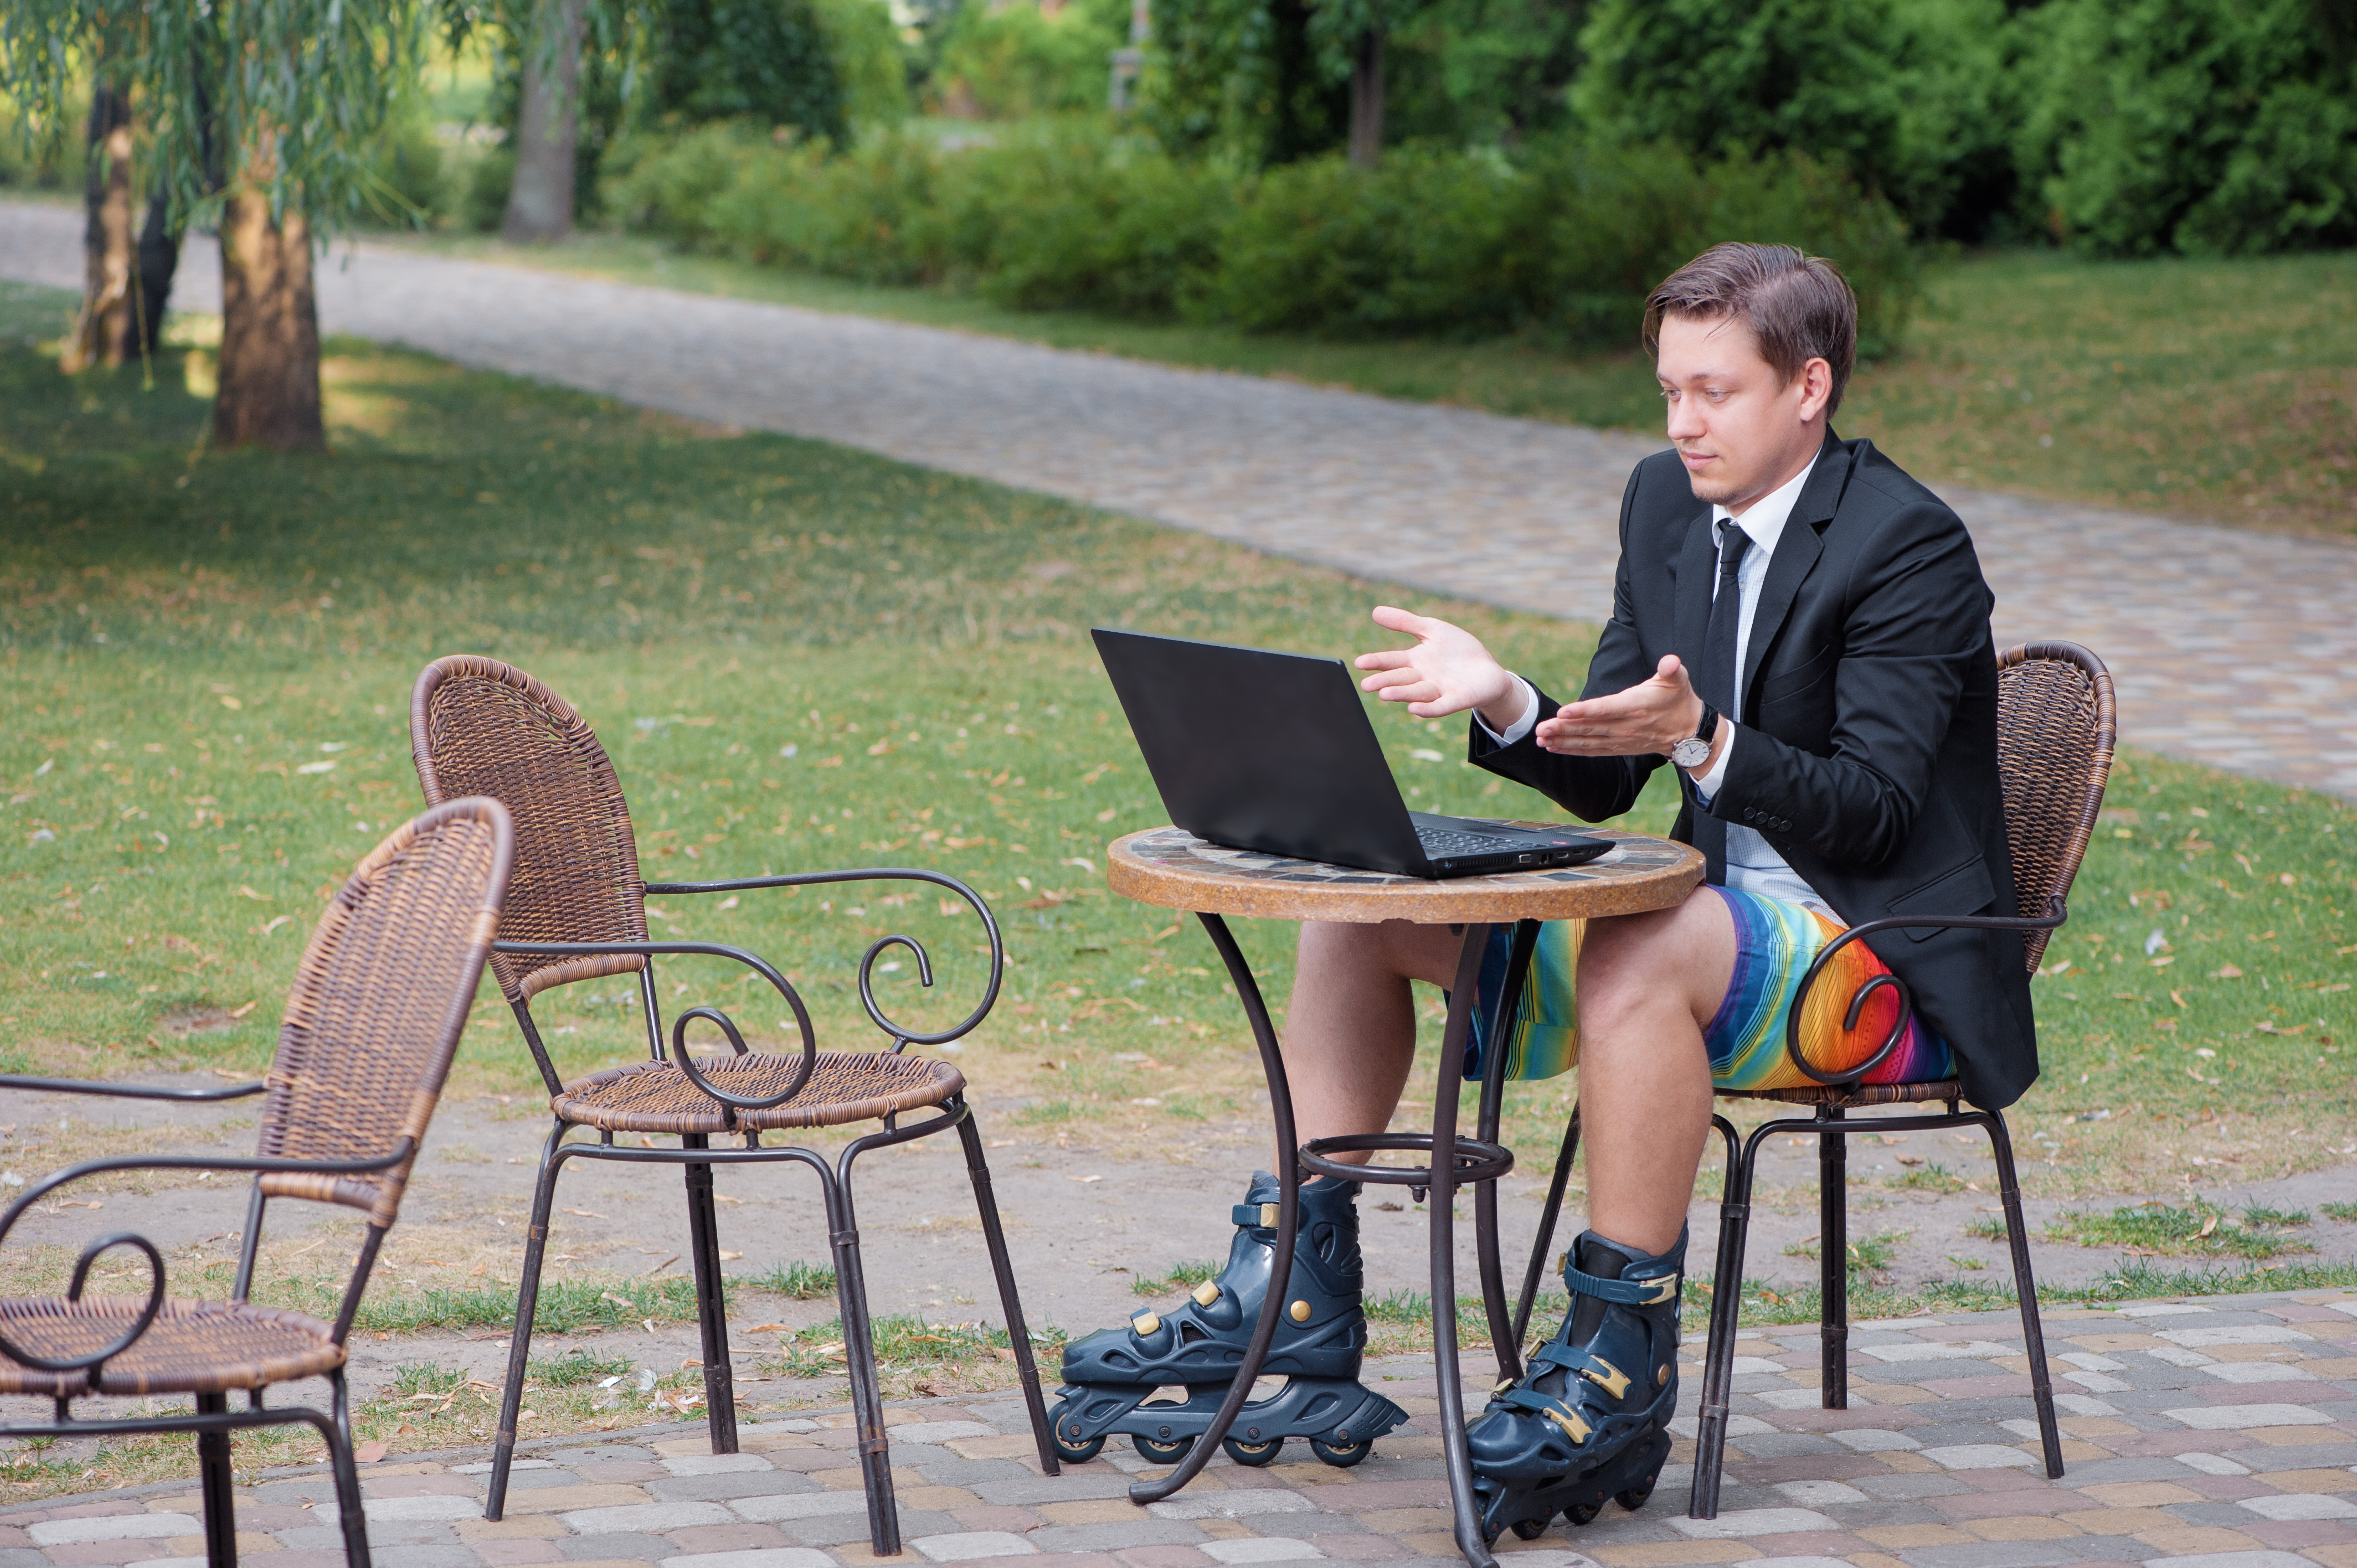 Businessman dressed in suit and shorts working with laptop, talking by skype at the park cafe outdoors, wearing roller blades